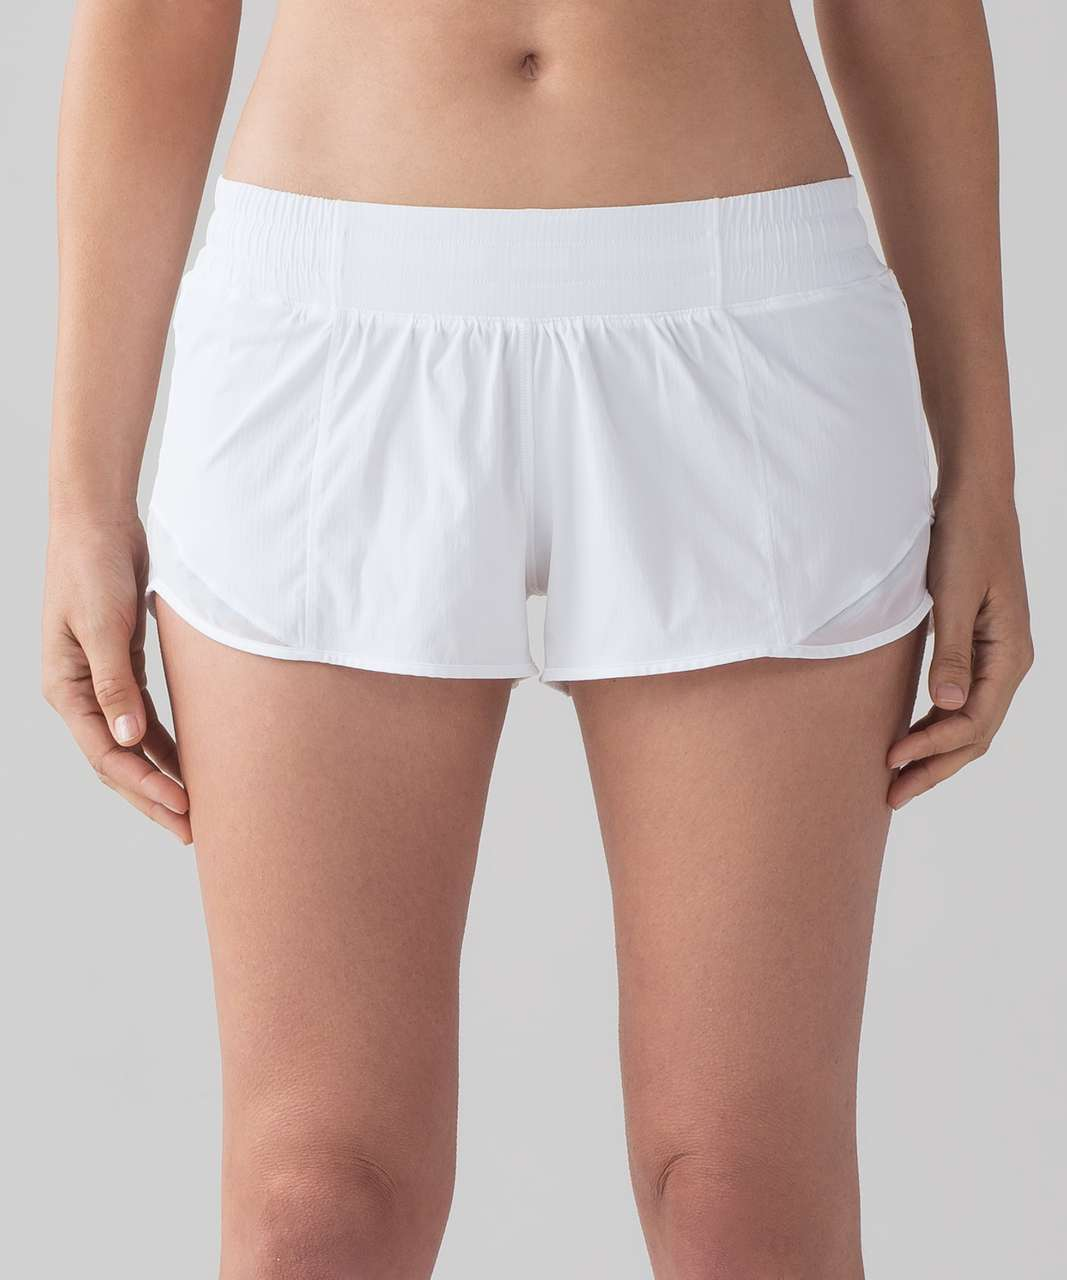 "Lululemon Hotty Hot Short II *2.5"" - White / Barely Beige"